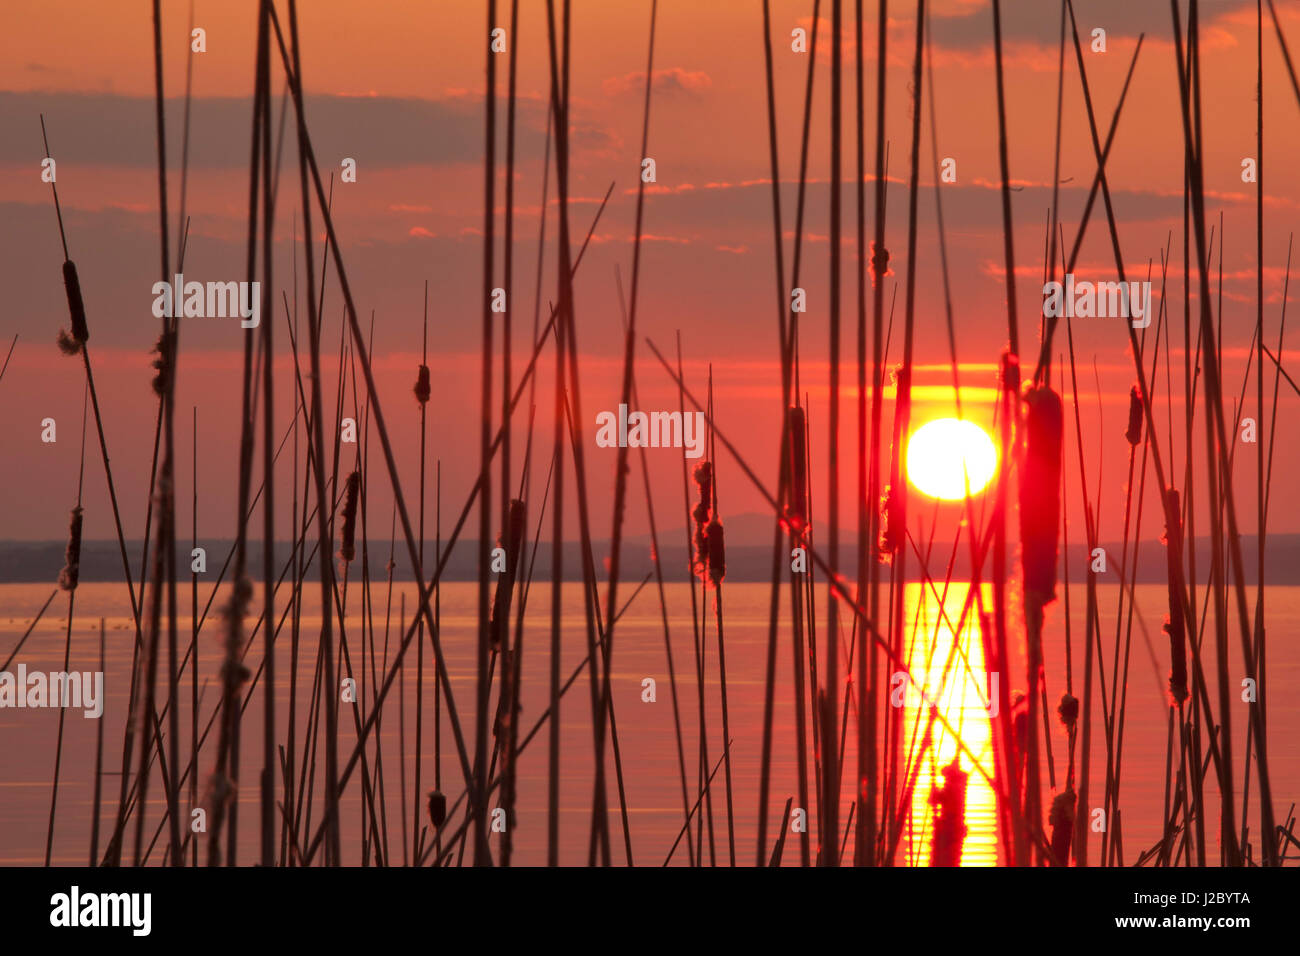 Reed curtain by the lake at sunset - Stock Image